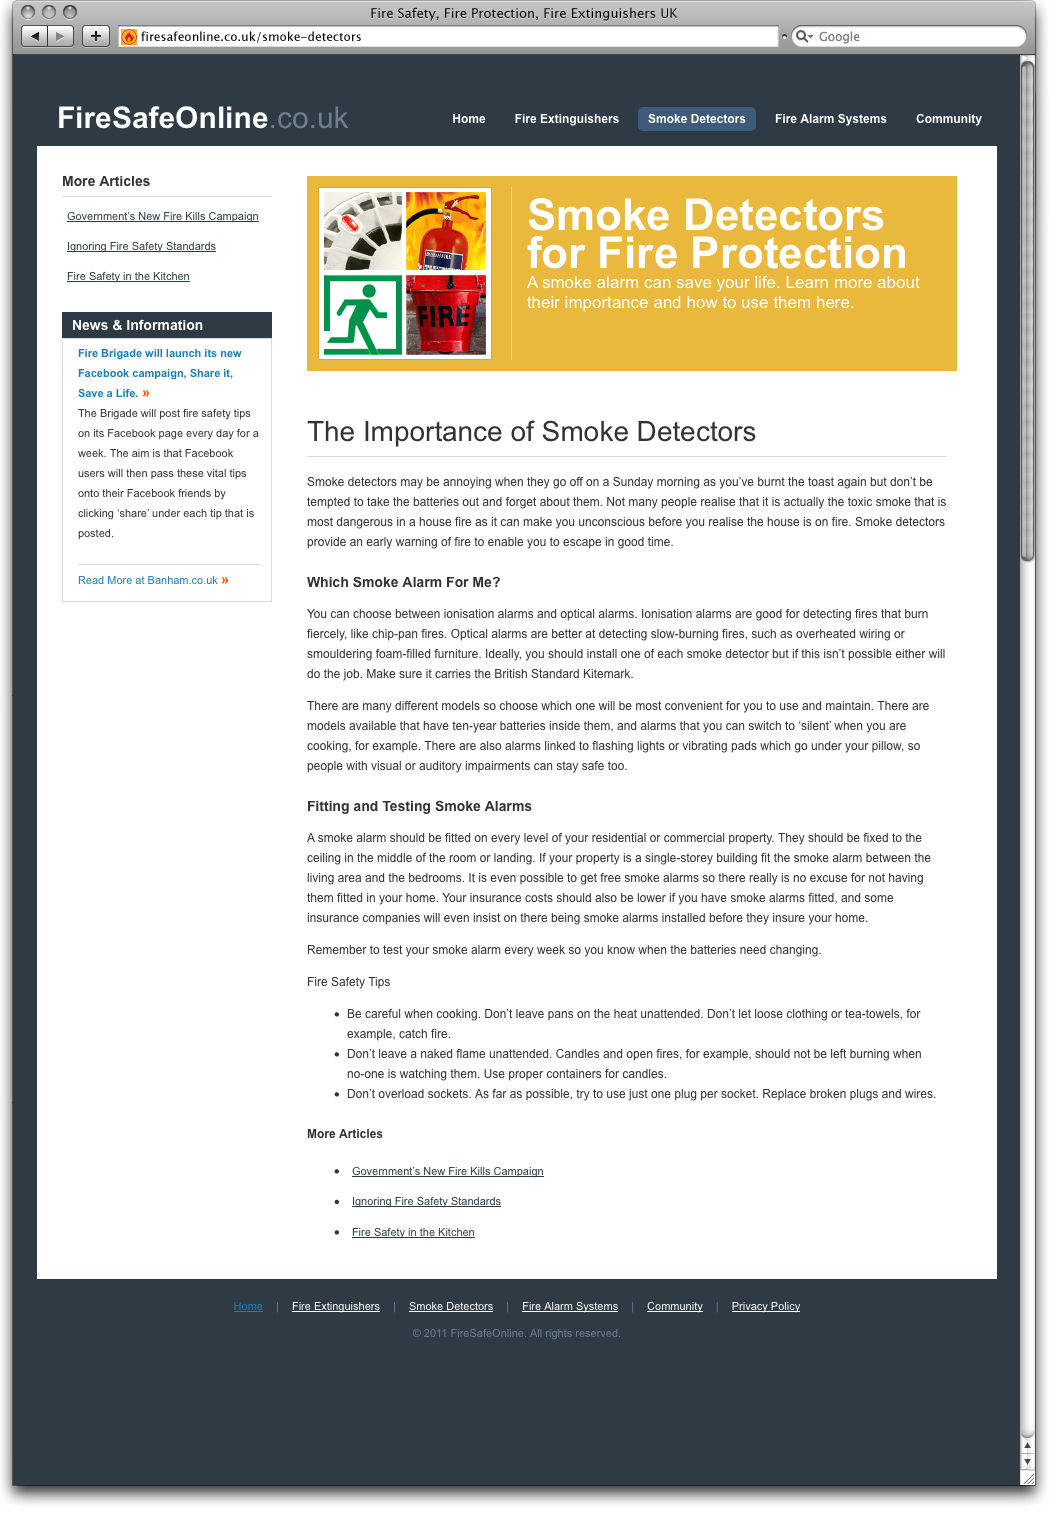 Fire Safe Online Article Page